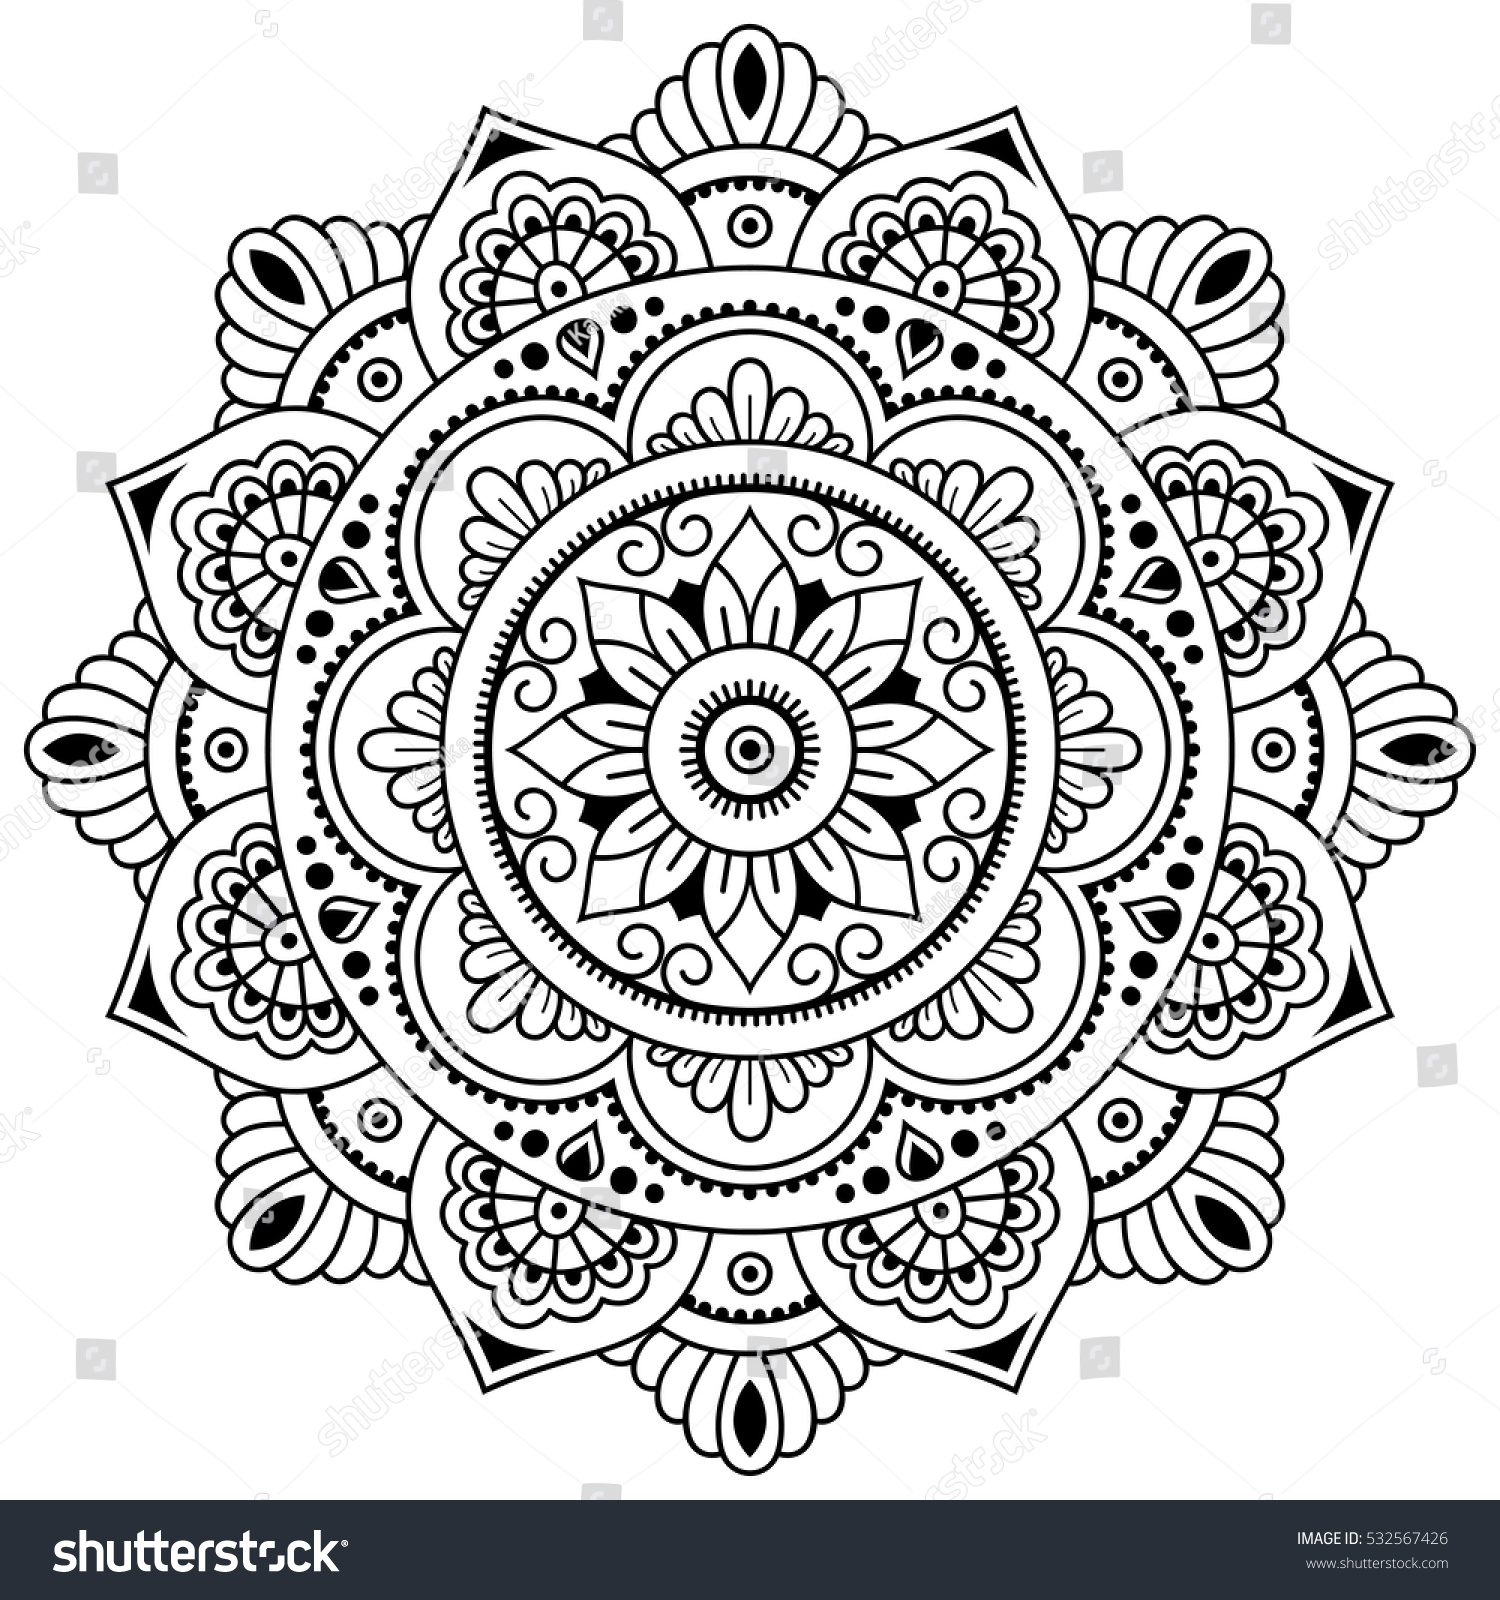 Vector henna tatoo mandala mehndi styledecorative stock for Henna coloring pages